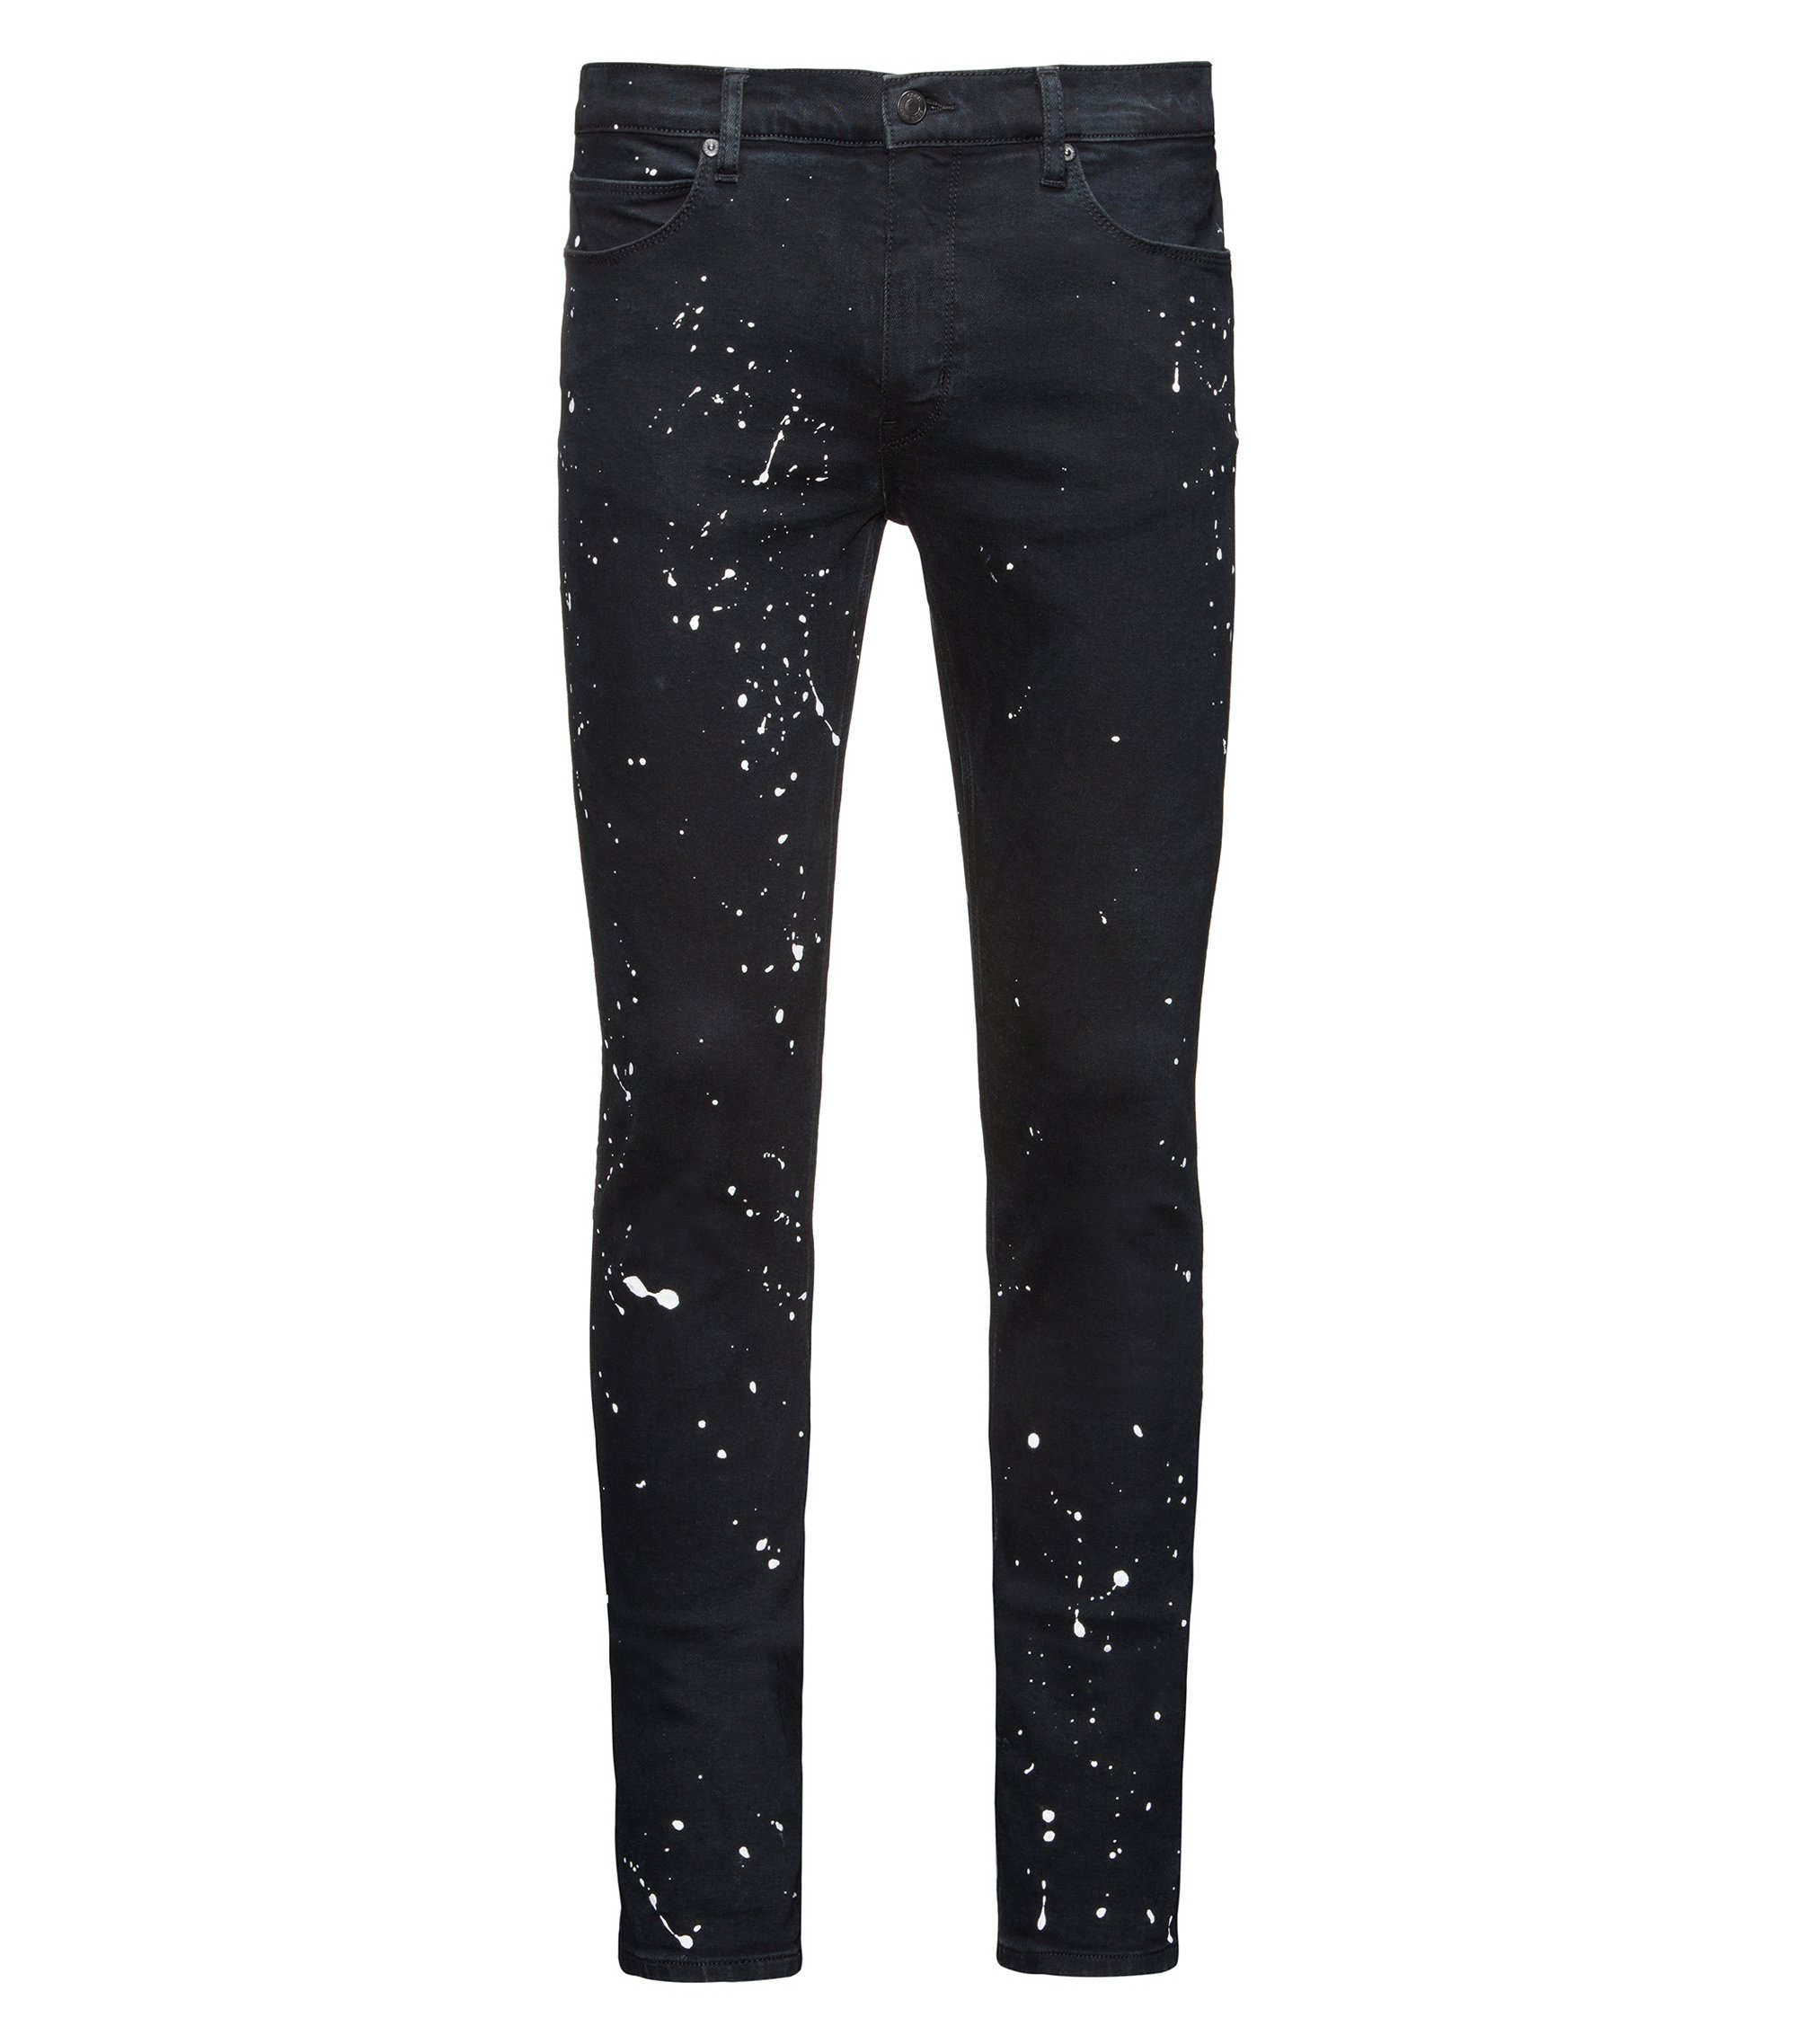 Jean Skinny Fit en denim super stretch à motif taches de peinture, Noir